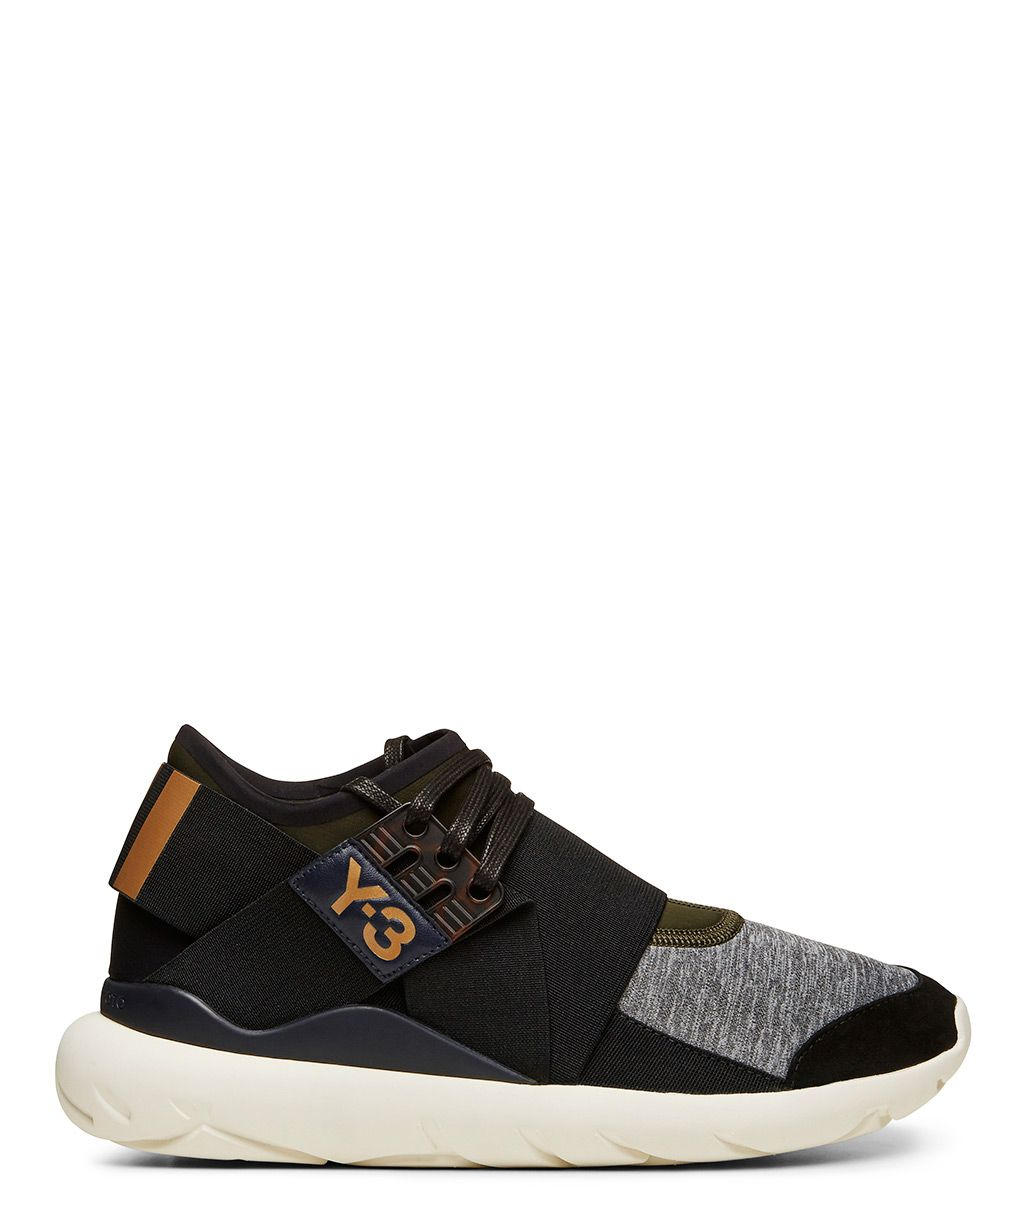 factory authentic 4042f 9789c Shop luxury sneakers and streetwear at Sneakerboy.